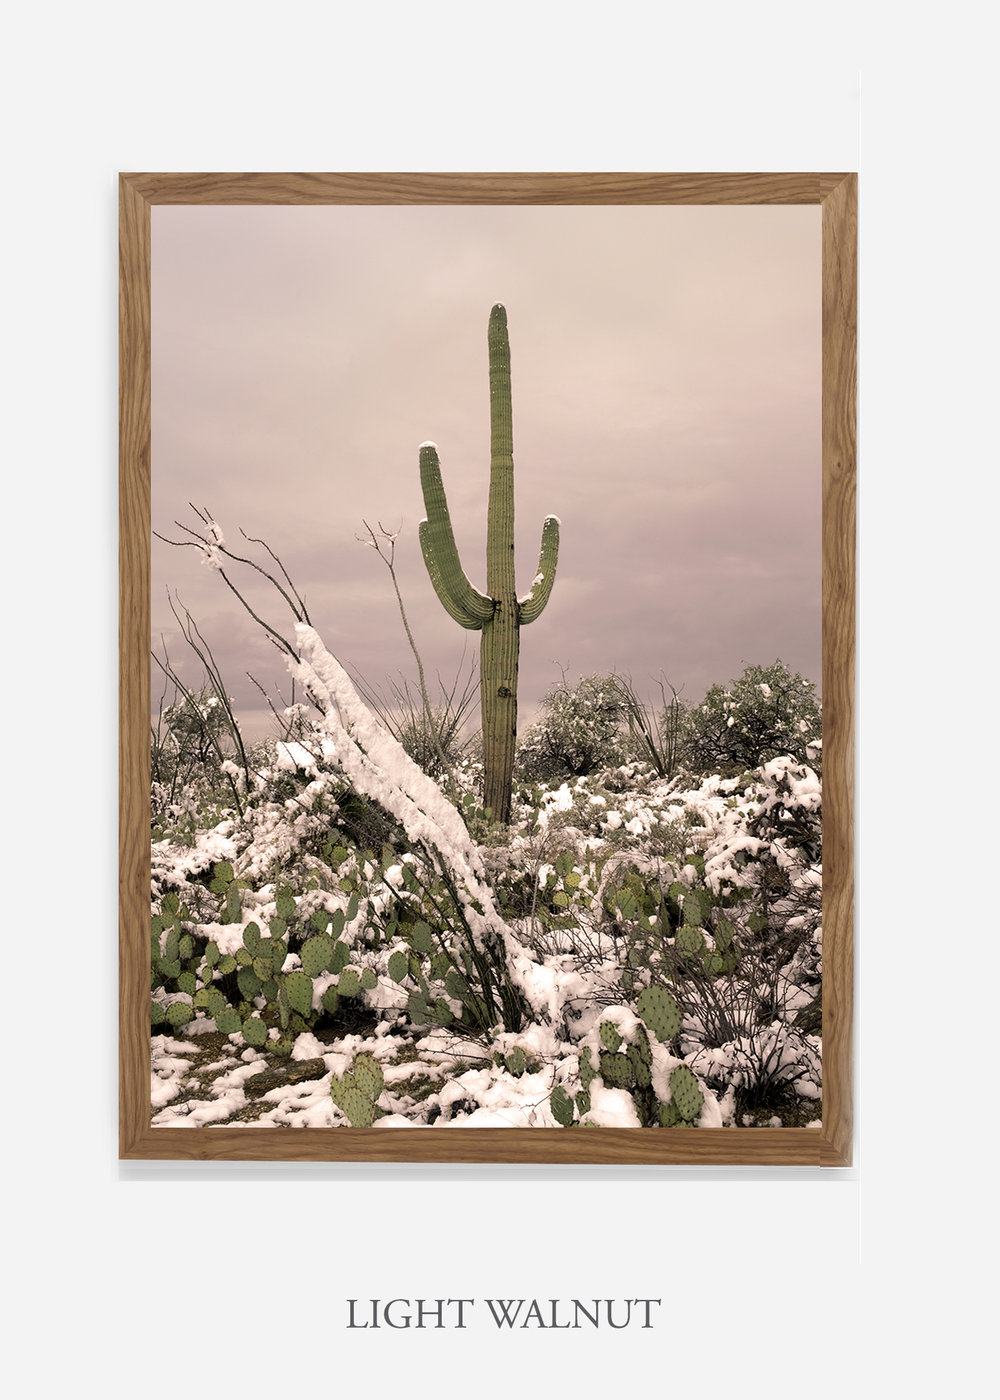 nomat-lightwalnutframe-saguaroNo.4-wildercalifornia-art-wallart-cactusprint-homedecor-prints-arizona-botanical-artwork-interiordesign.jpg